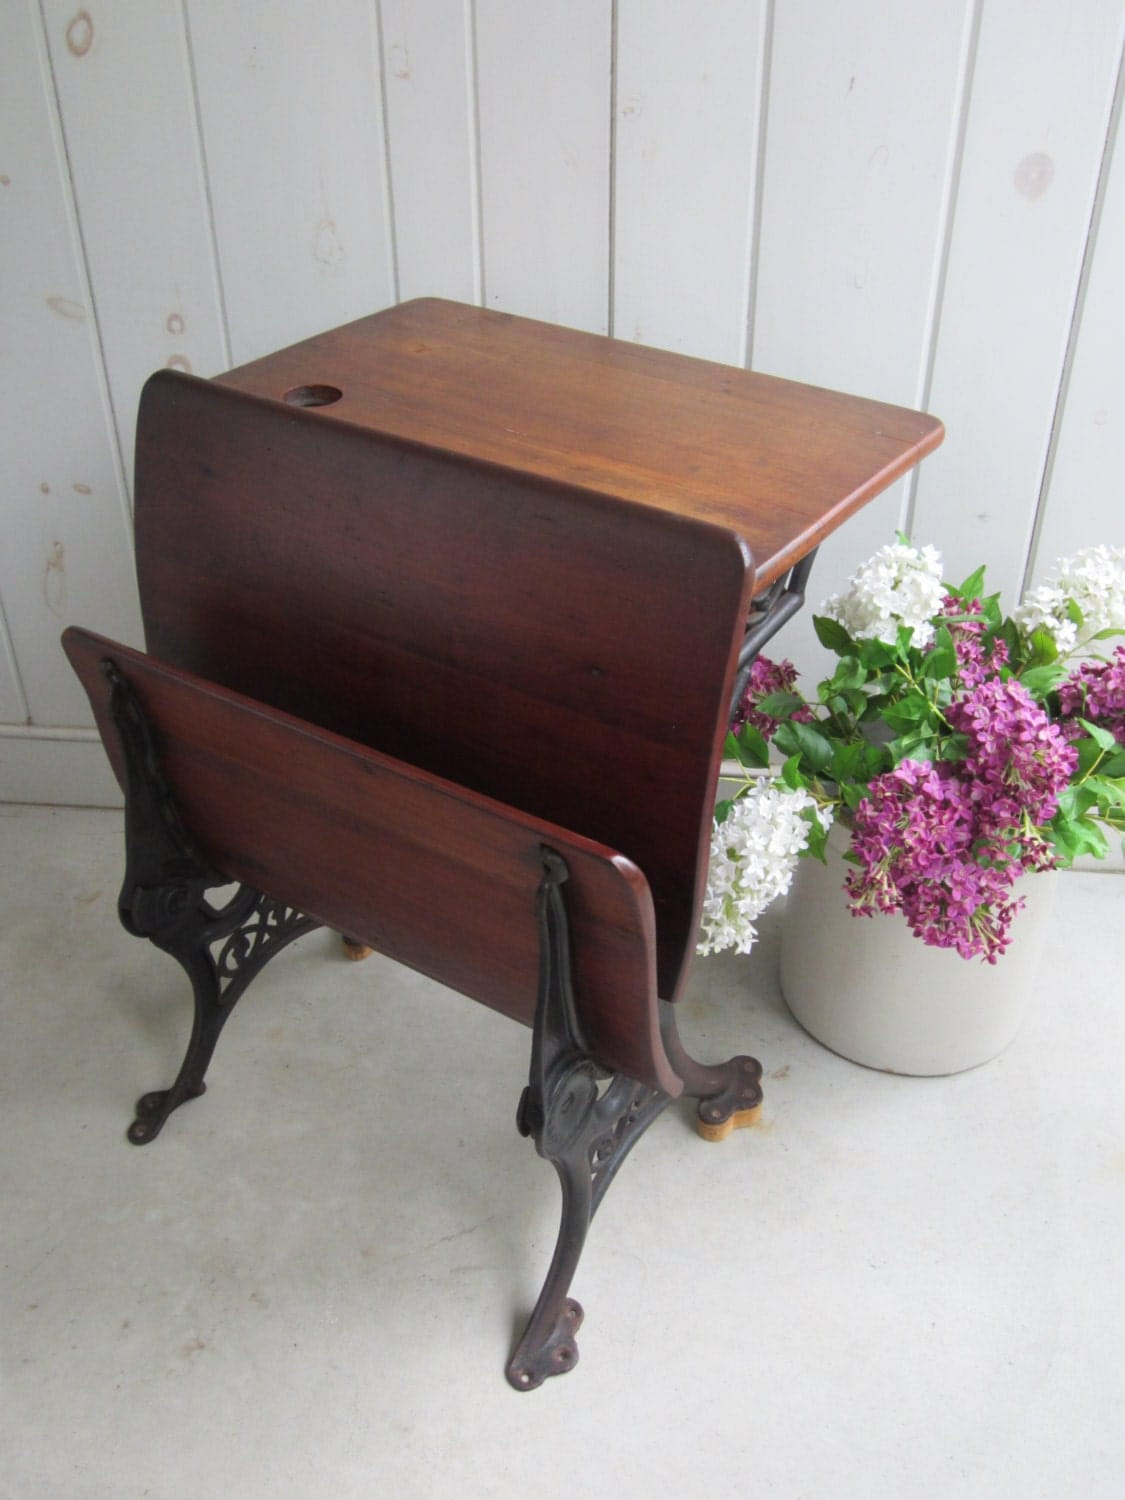 Wonderful Vintage Childs School Desk With Fold Up Seat And